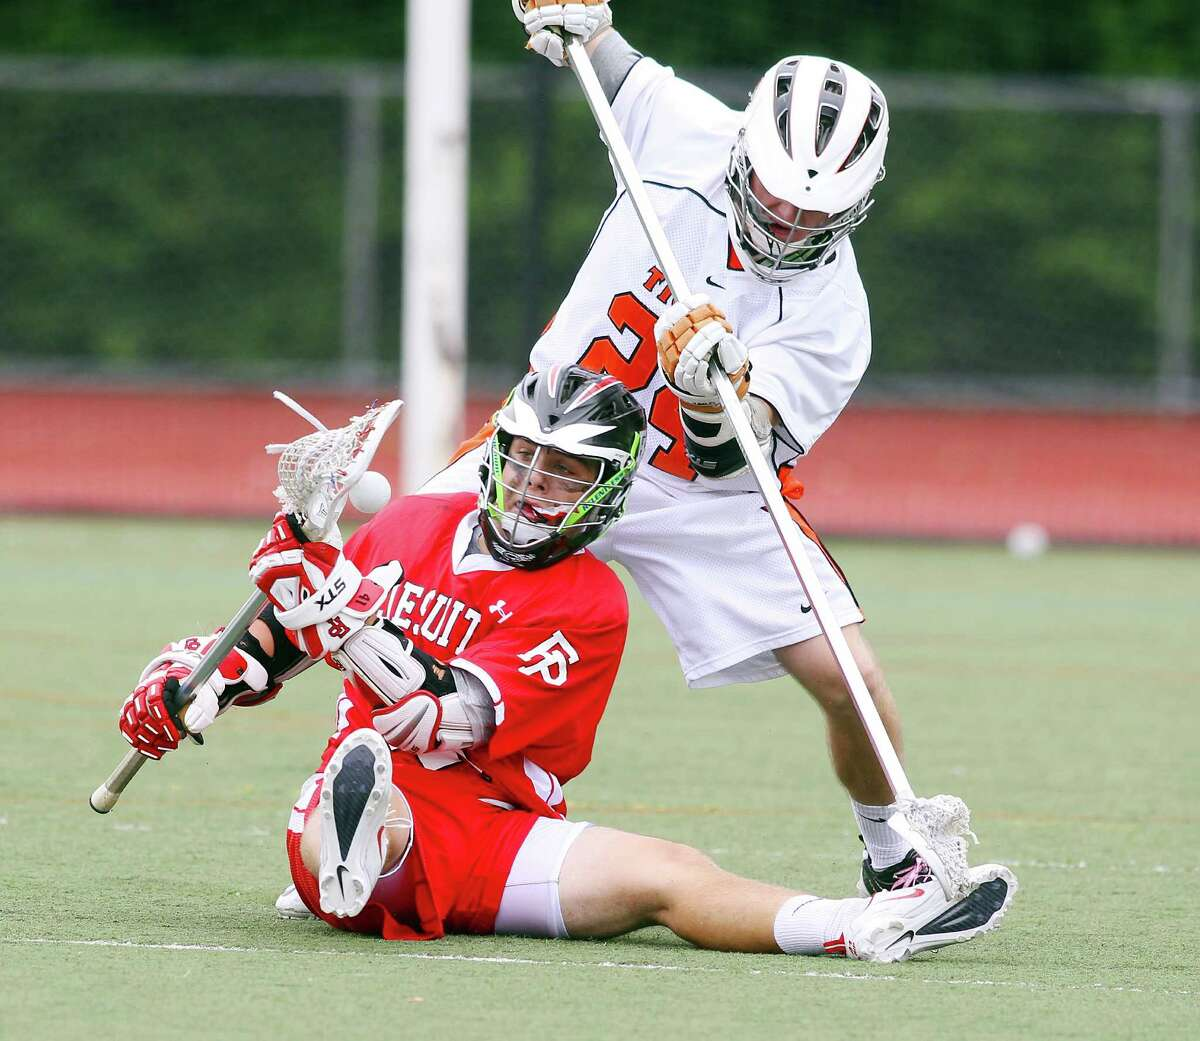 Kevin Brown of Fairfield Prep controls the ball despite the defensive efforts of Ridgefields's Brendan Bossidy during the Class L Final lacrosse championship at Brien McMahon High School on Saturday June 9, 2012. Fairfield Prep beat Ridgefield, 8-6.